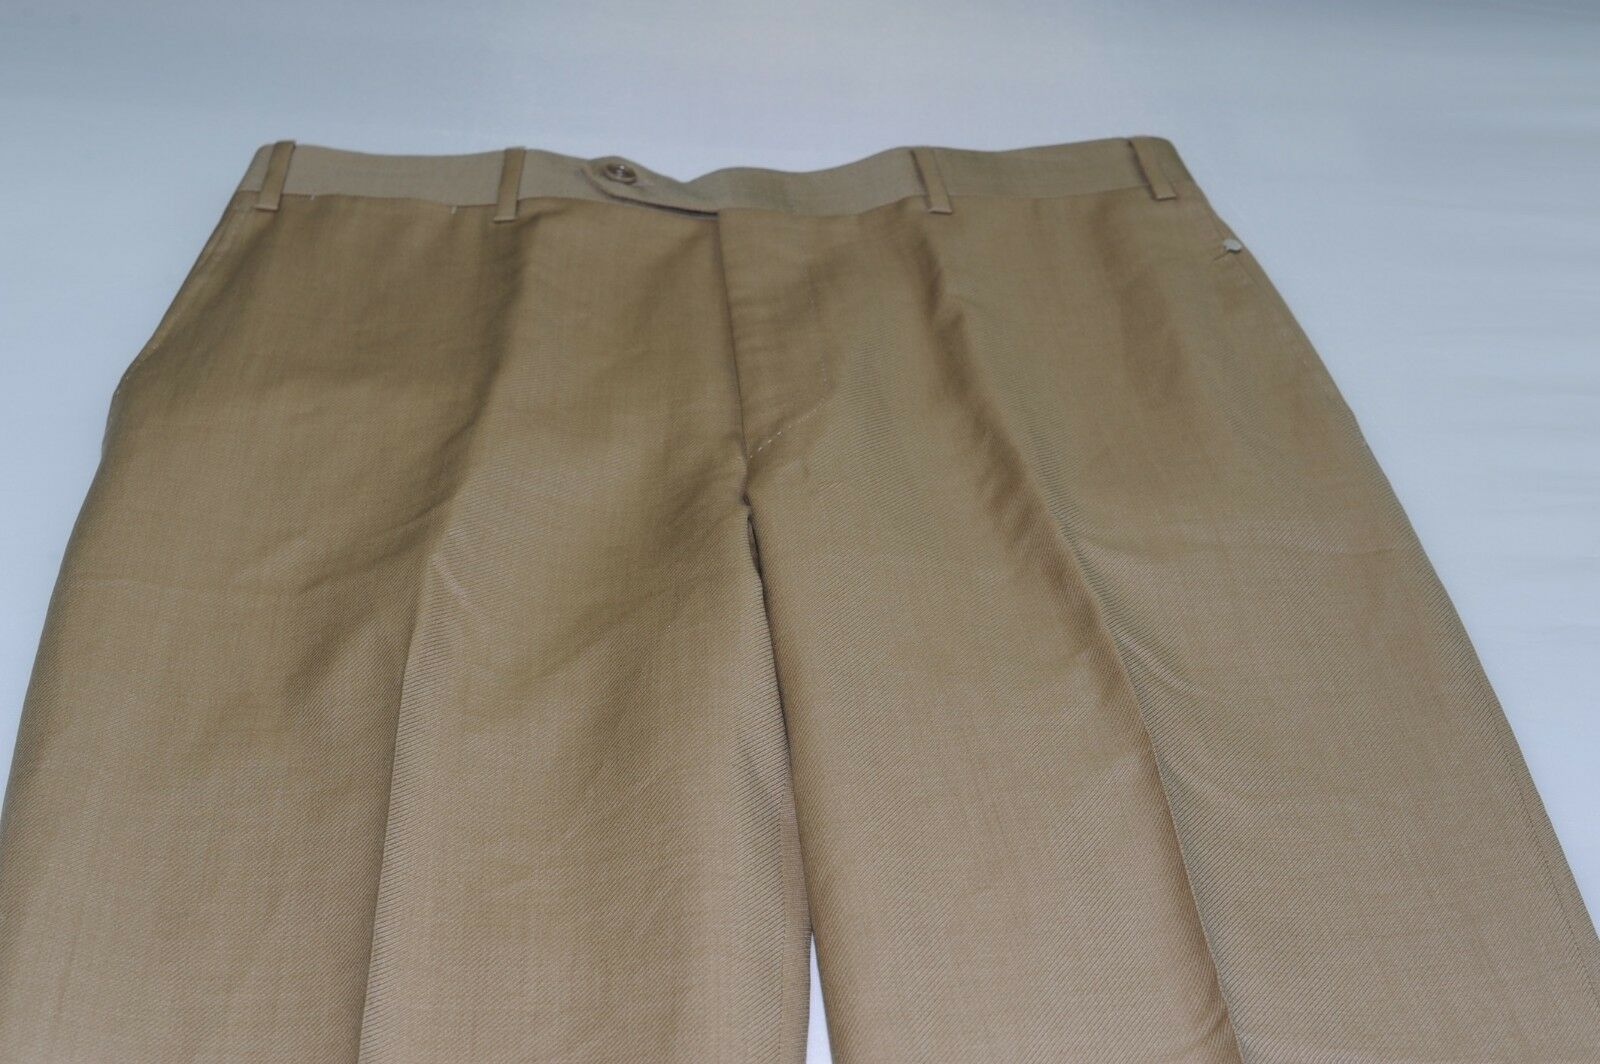 NWOT Canali Men's Flat Front Wool Dress Pants 34X29 () Made